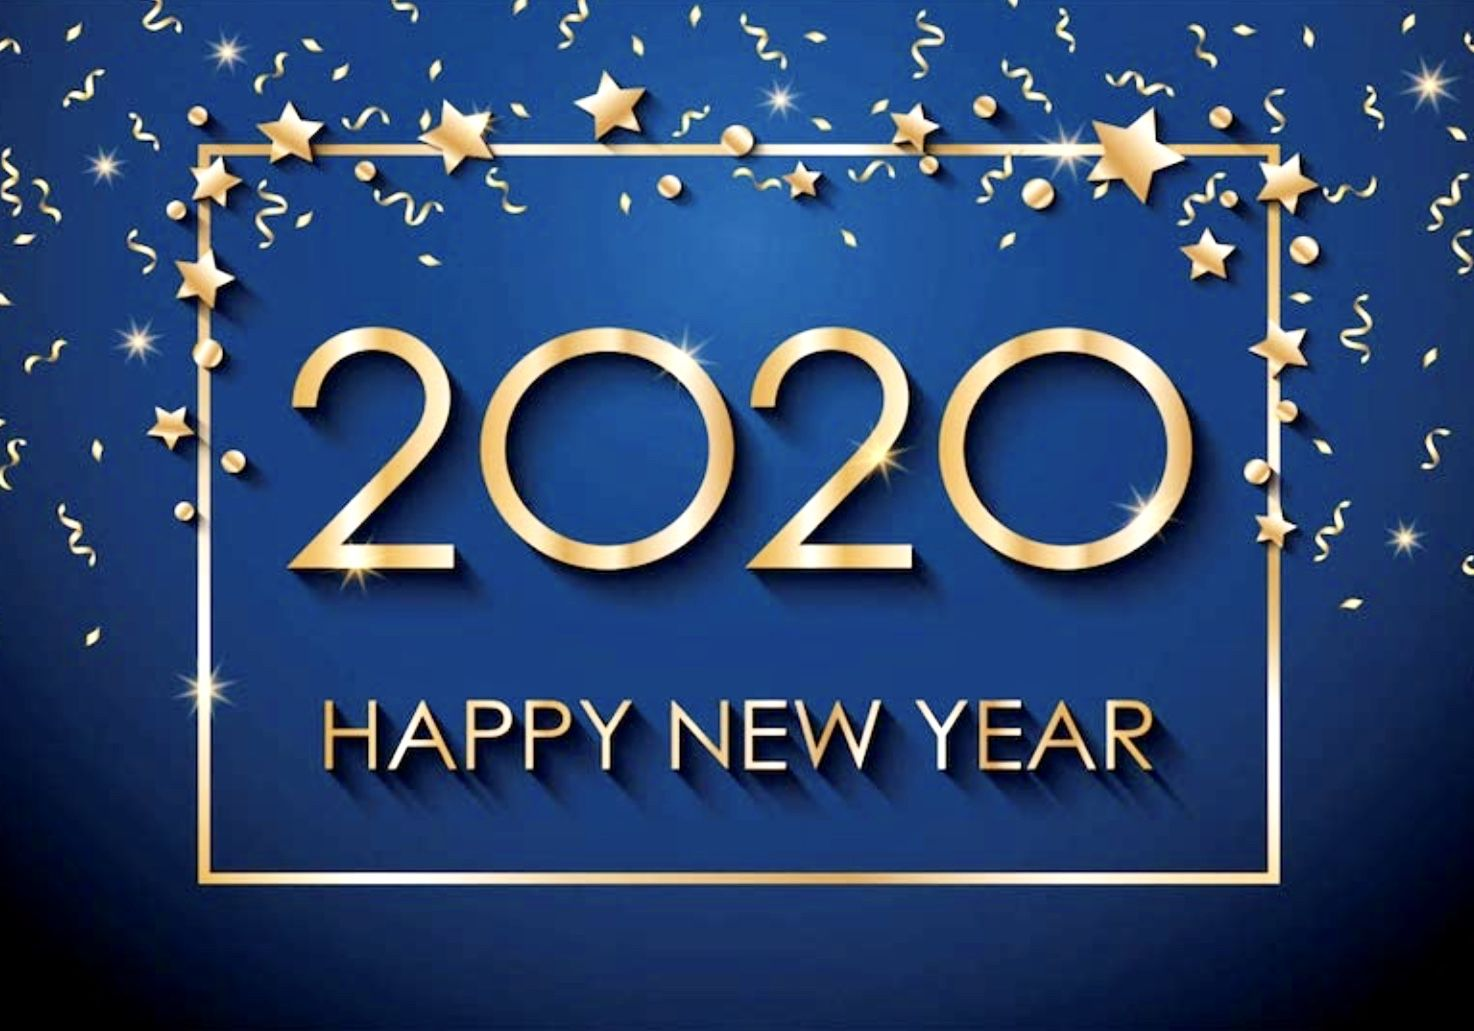 Pin by TRowcliff on Virtual Wishes in 2020 Happy new